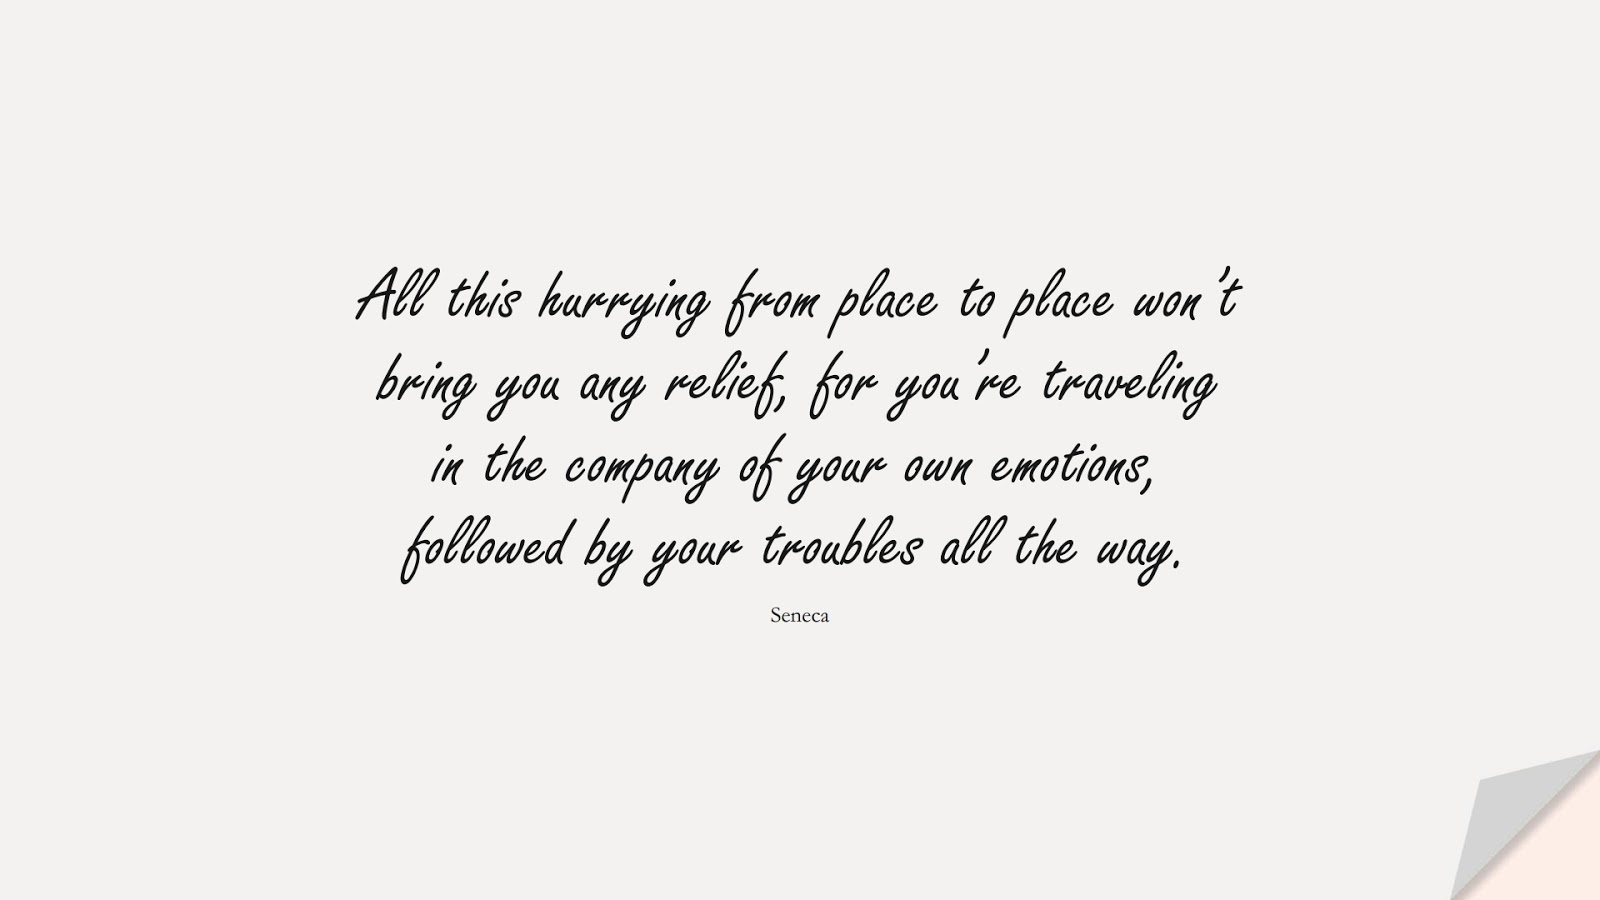 All this hurrying from place to place won't bring you any relief, for you're traveling in the company of your own emotions, followed by your troubles all the way. (Seneca);  #AnxietyQuotes